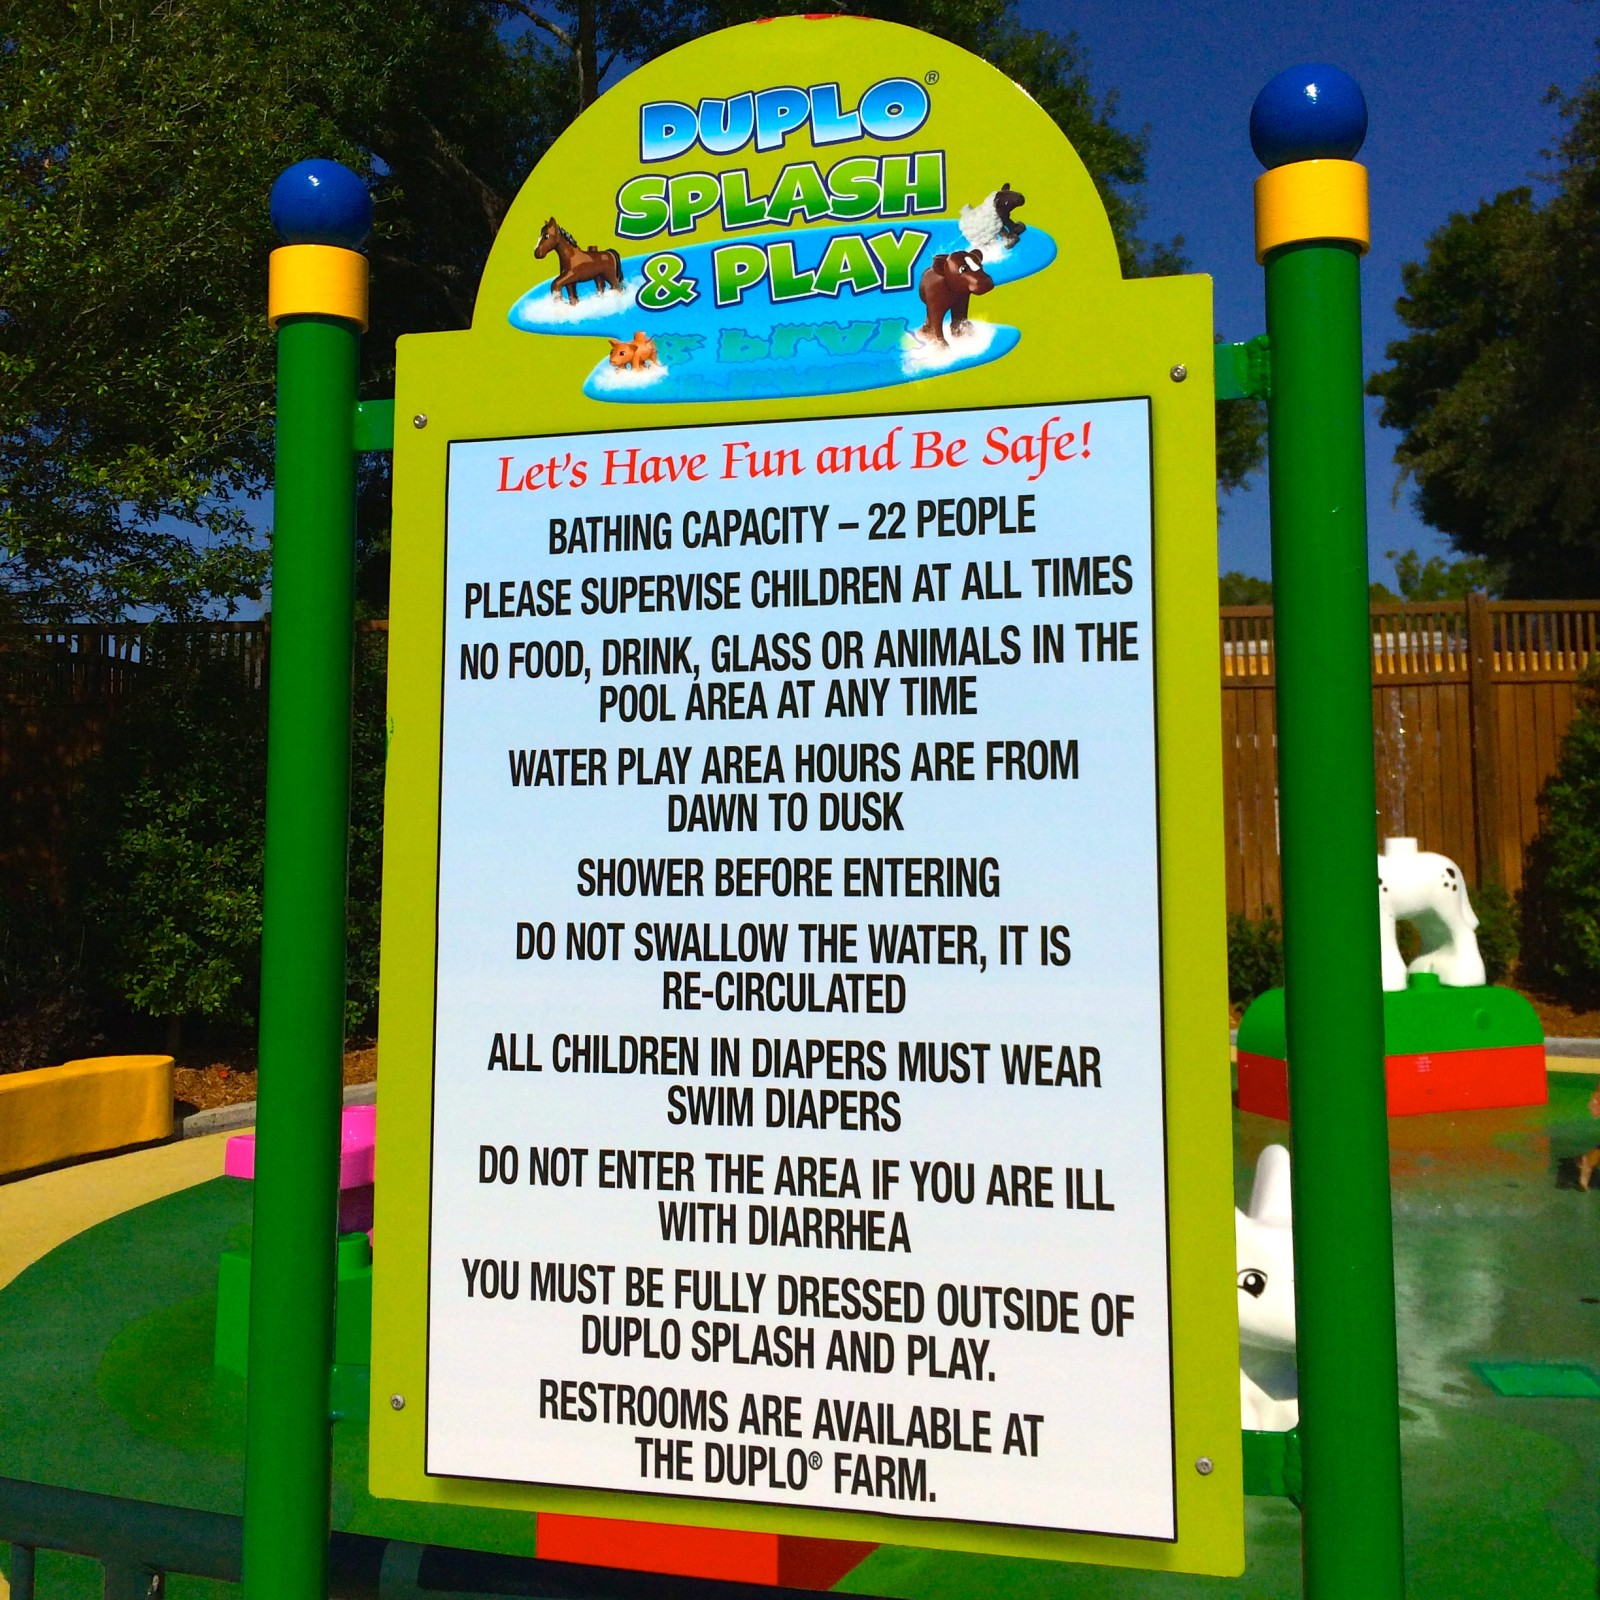 DUPLO Valley Splash and Play Info